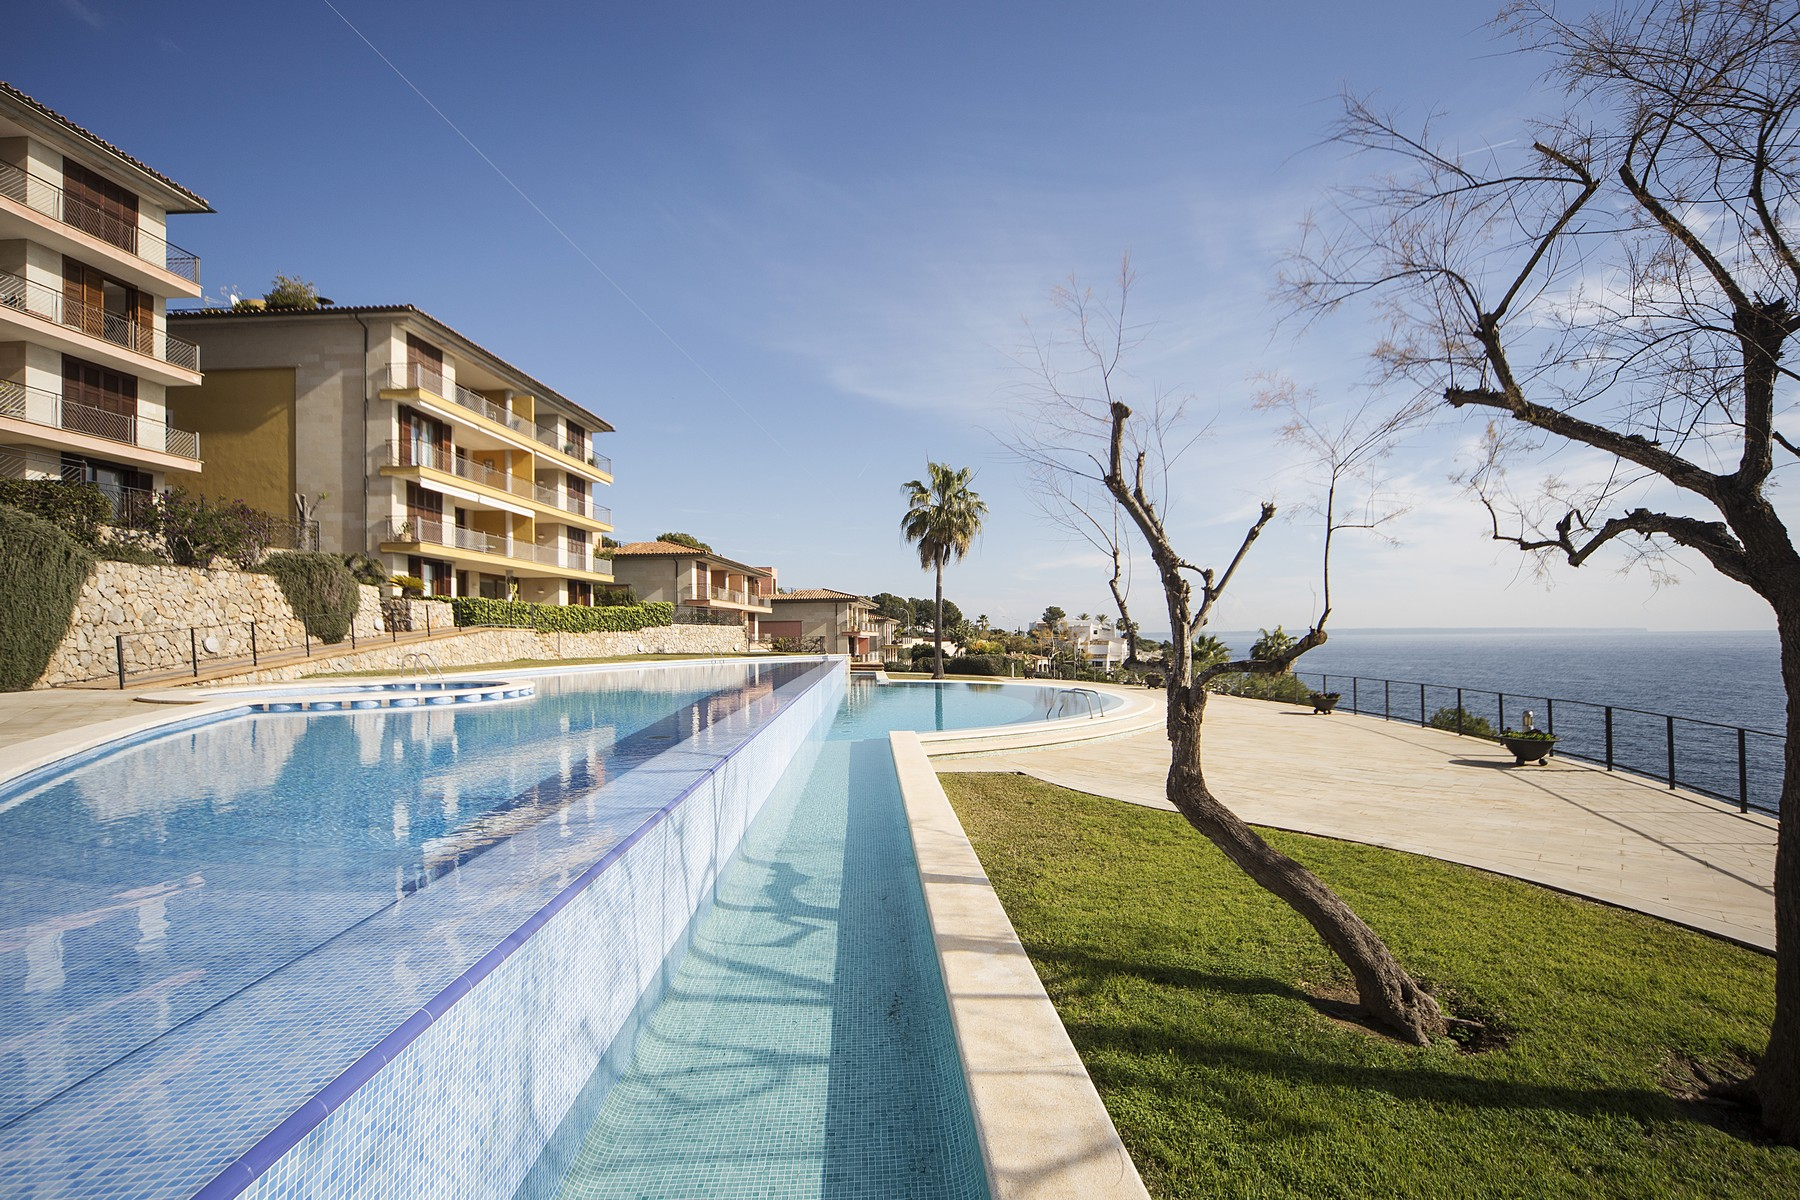 Apartment for Sale at Apartment with sea access in Sol de Mallorca Sol De Mallorca, Mallorca, 07181 Spain